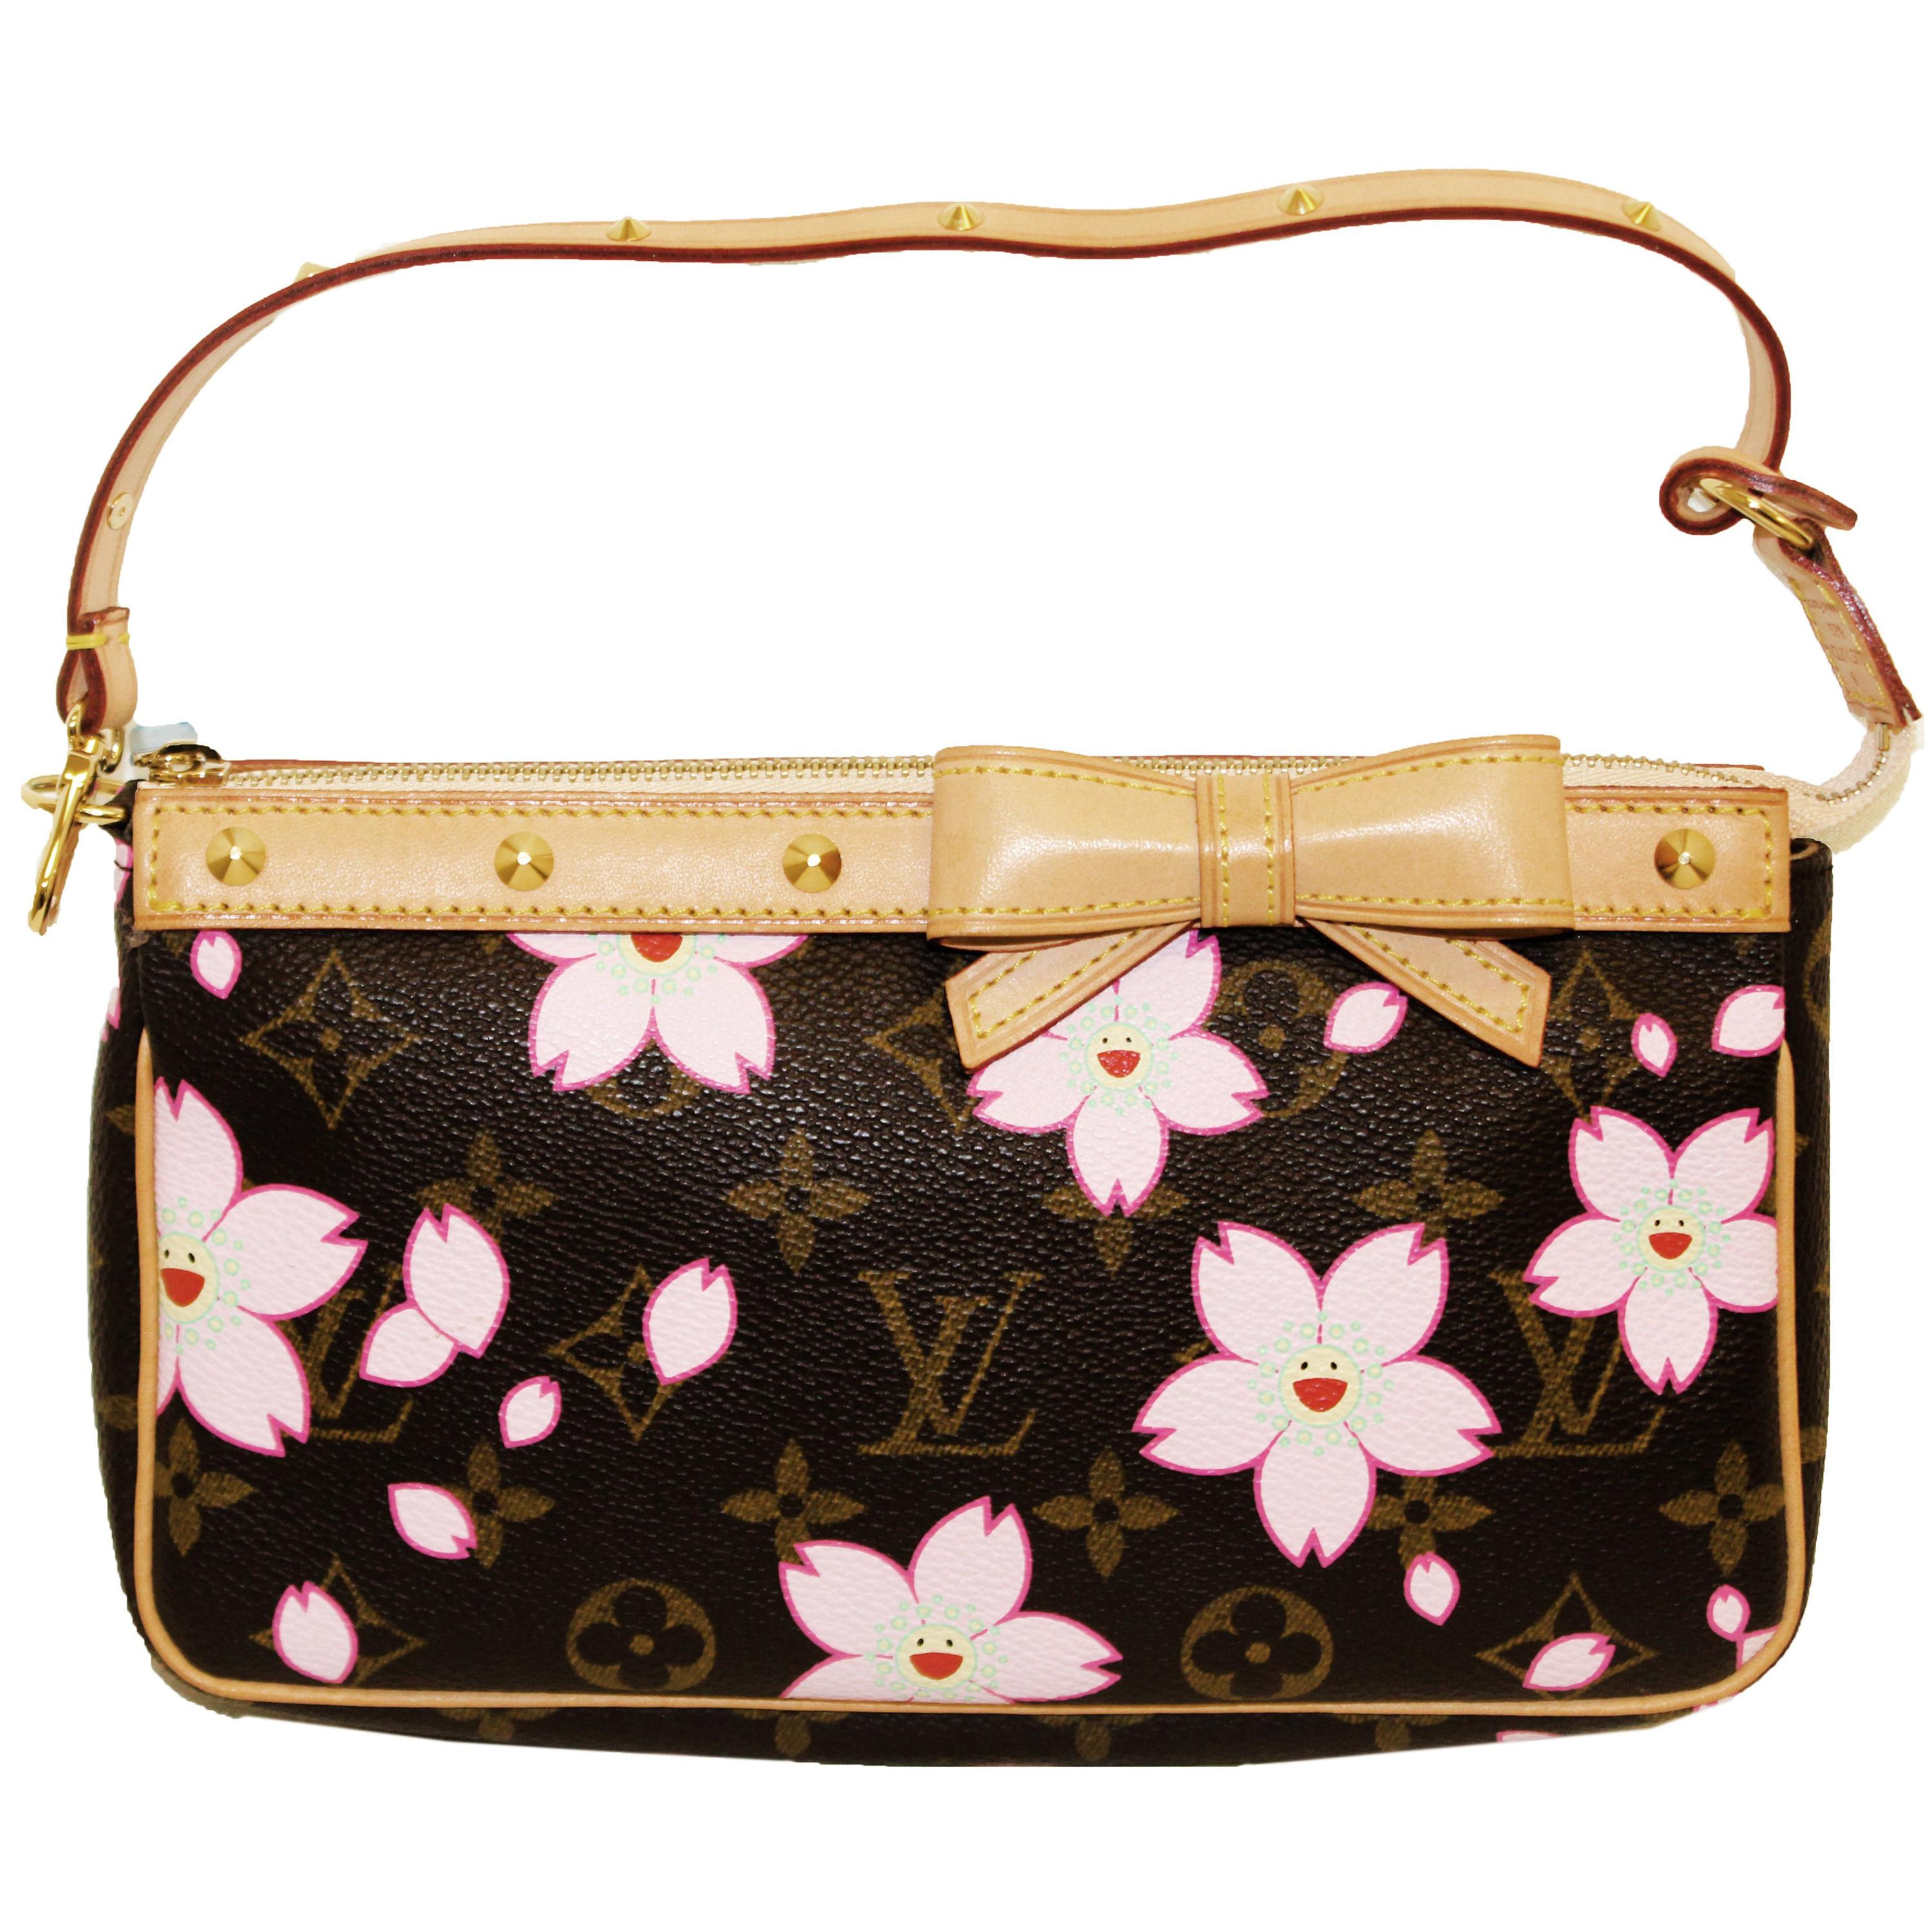 6f230d2c2d Louis Vuitton Monogram Cherry Blossom Limited Edition Pochette at 1stdibs